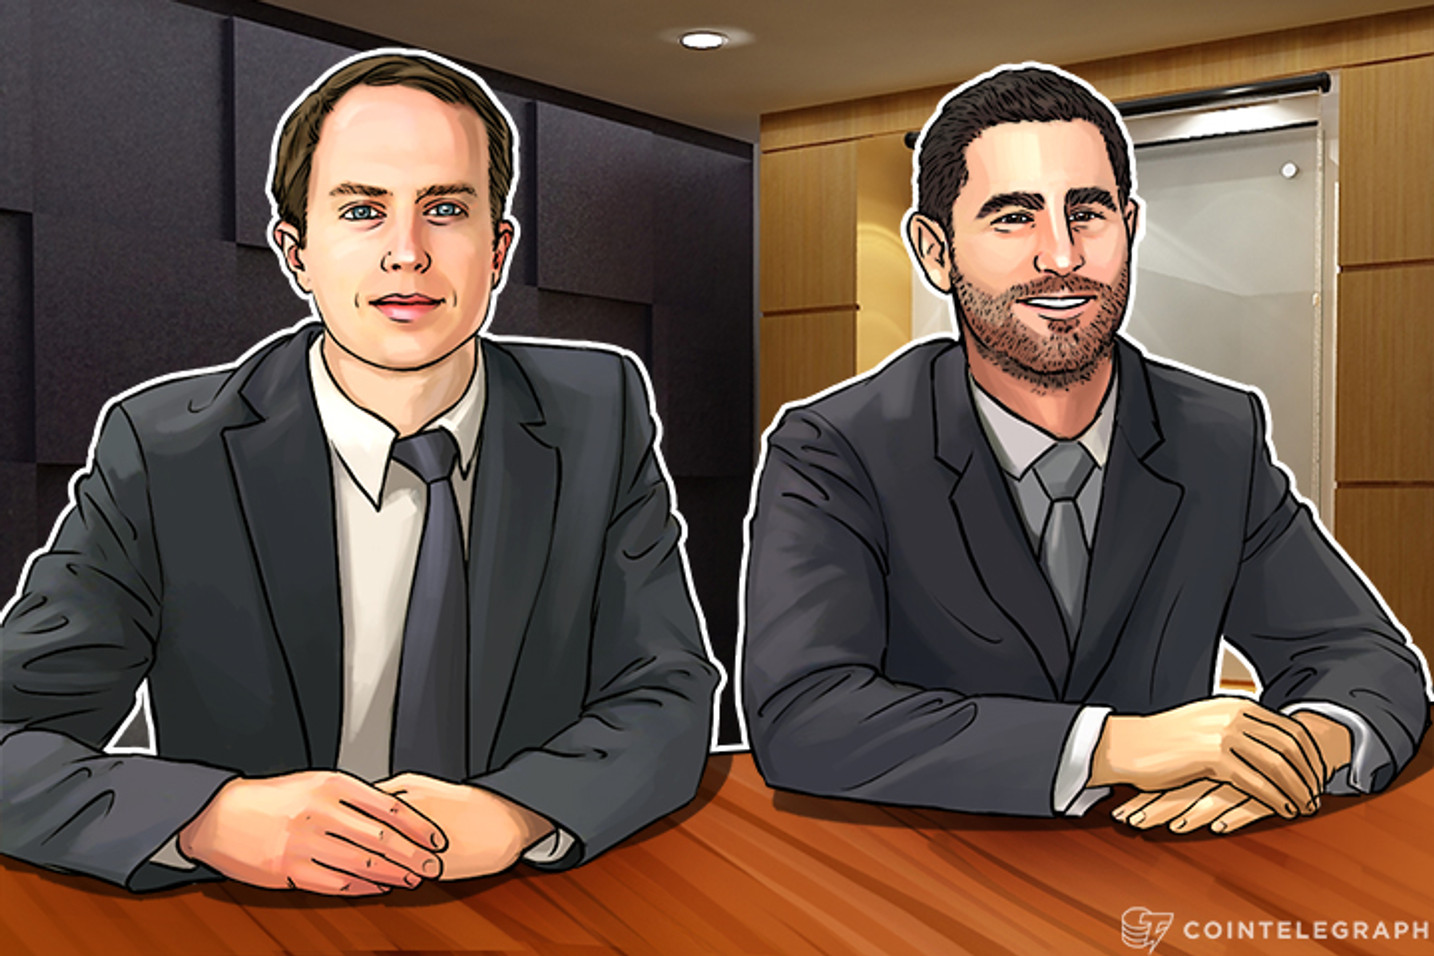 Changelly is Set to Outperform ShapeShift with Charlie Shrem as Advisor